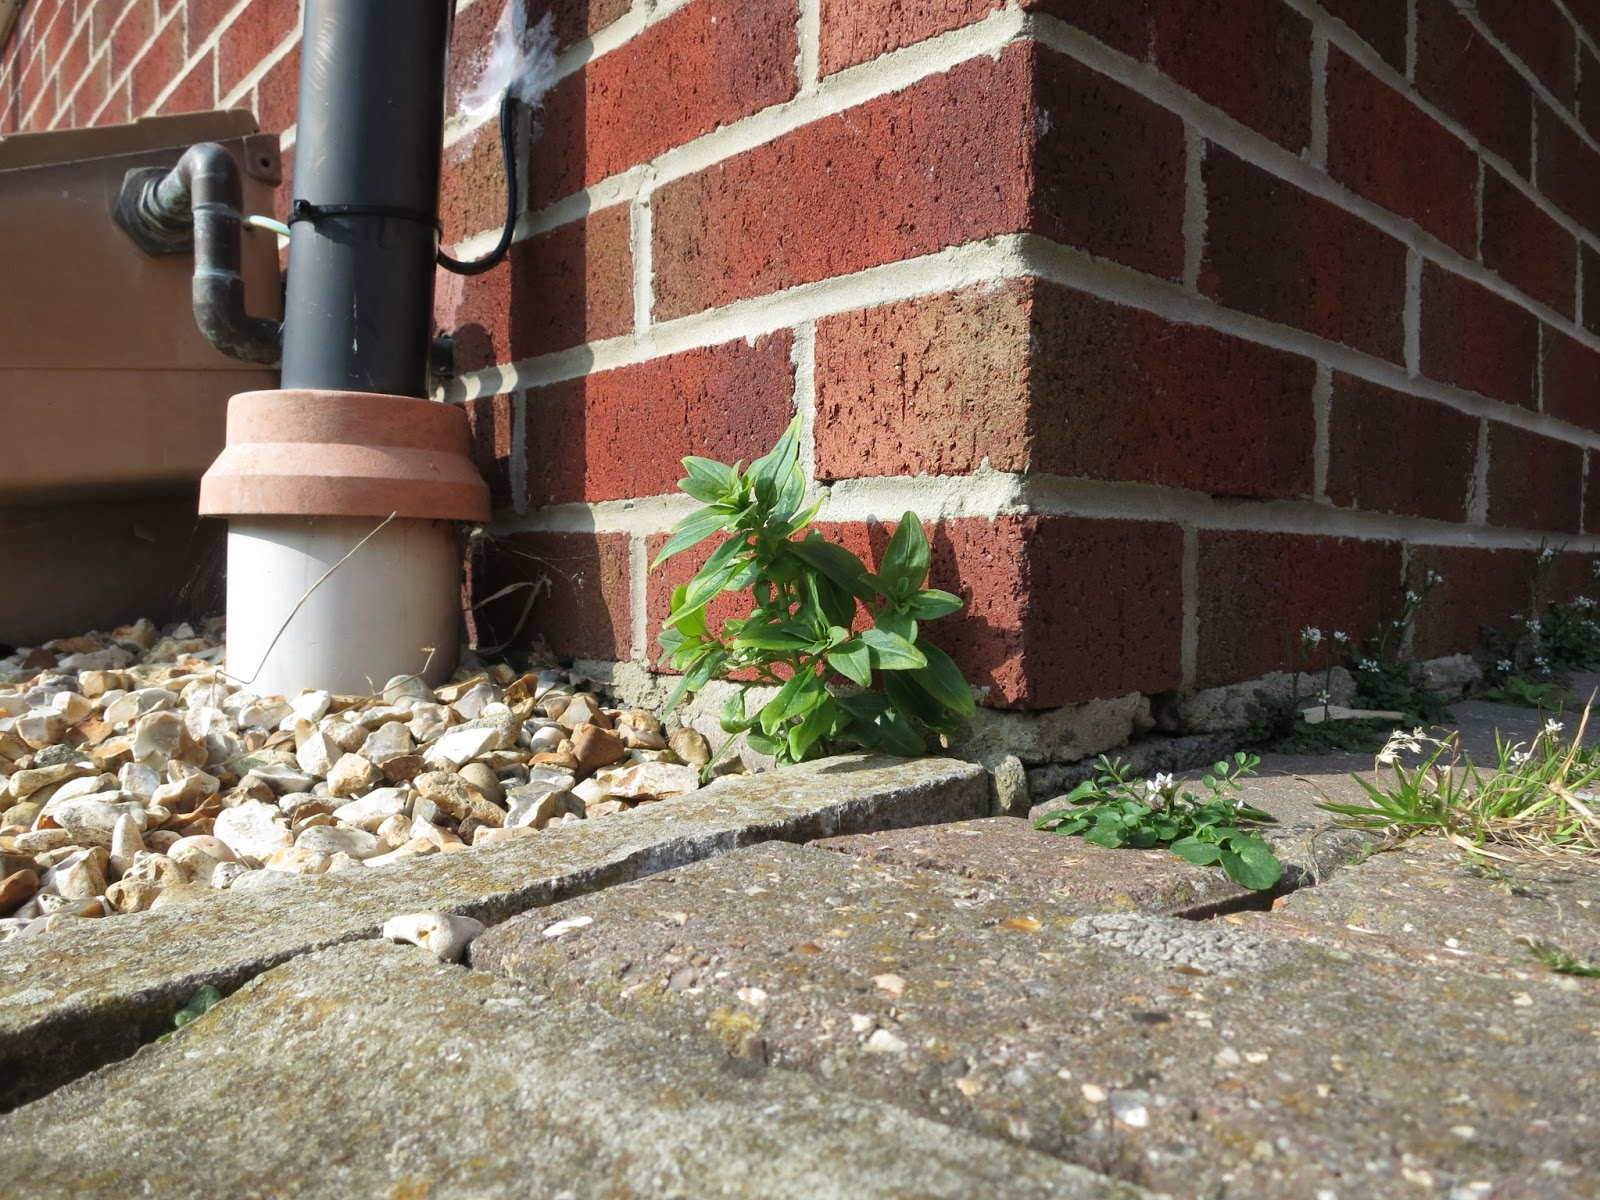 Green leaved plant and little plants with white flowers next to downpipe and gas meter box